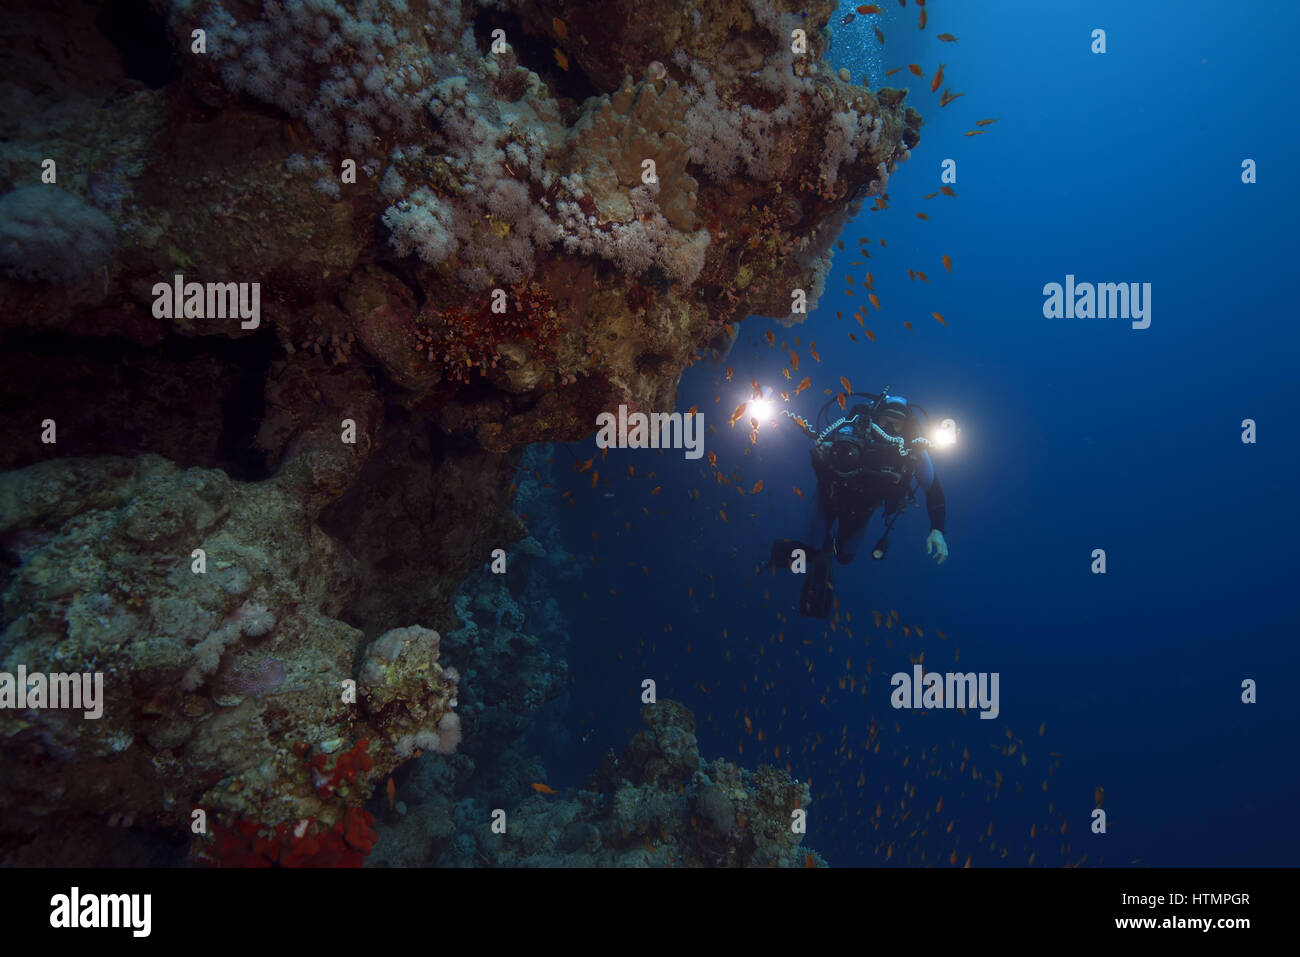 Underwater videooperator shoting scool of fish near coral reef, Red sea, Sharm El Sheikh, Sinai Peninsula, Egypt - Stock Image